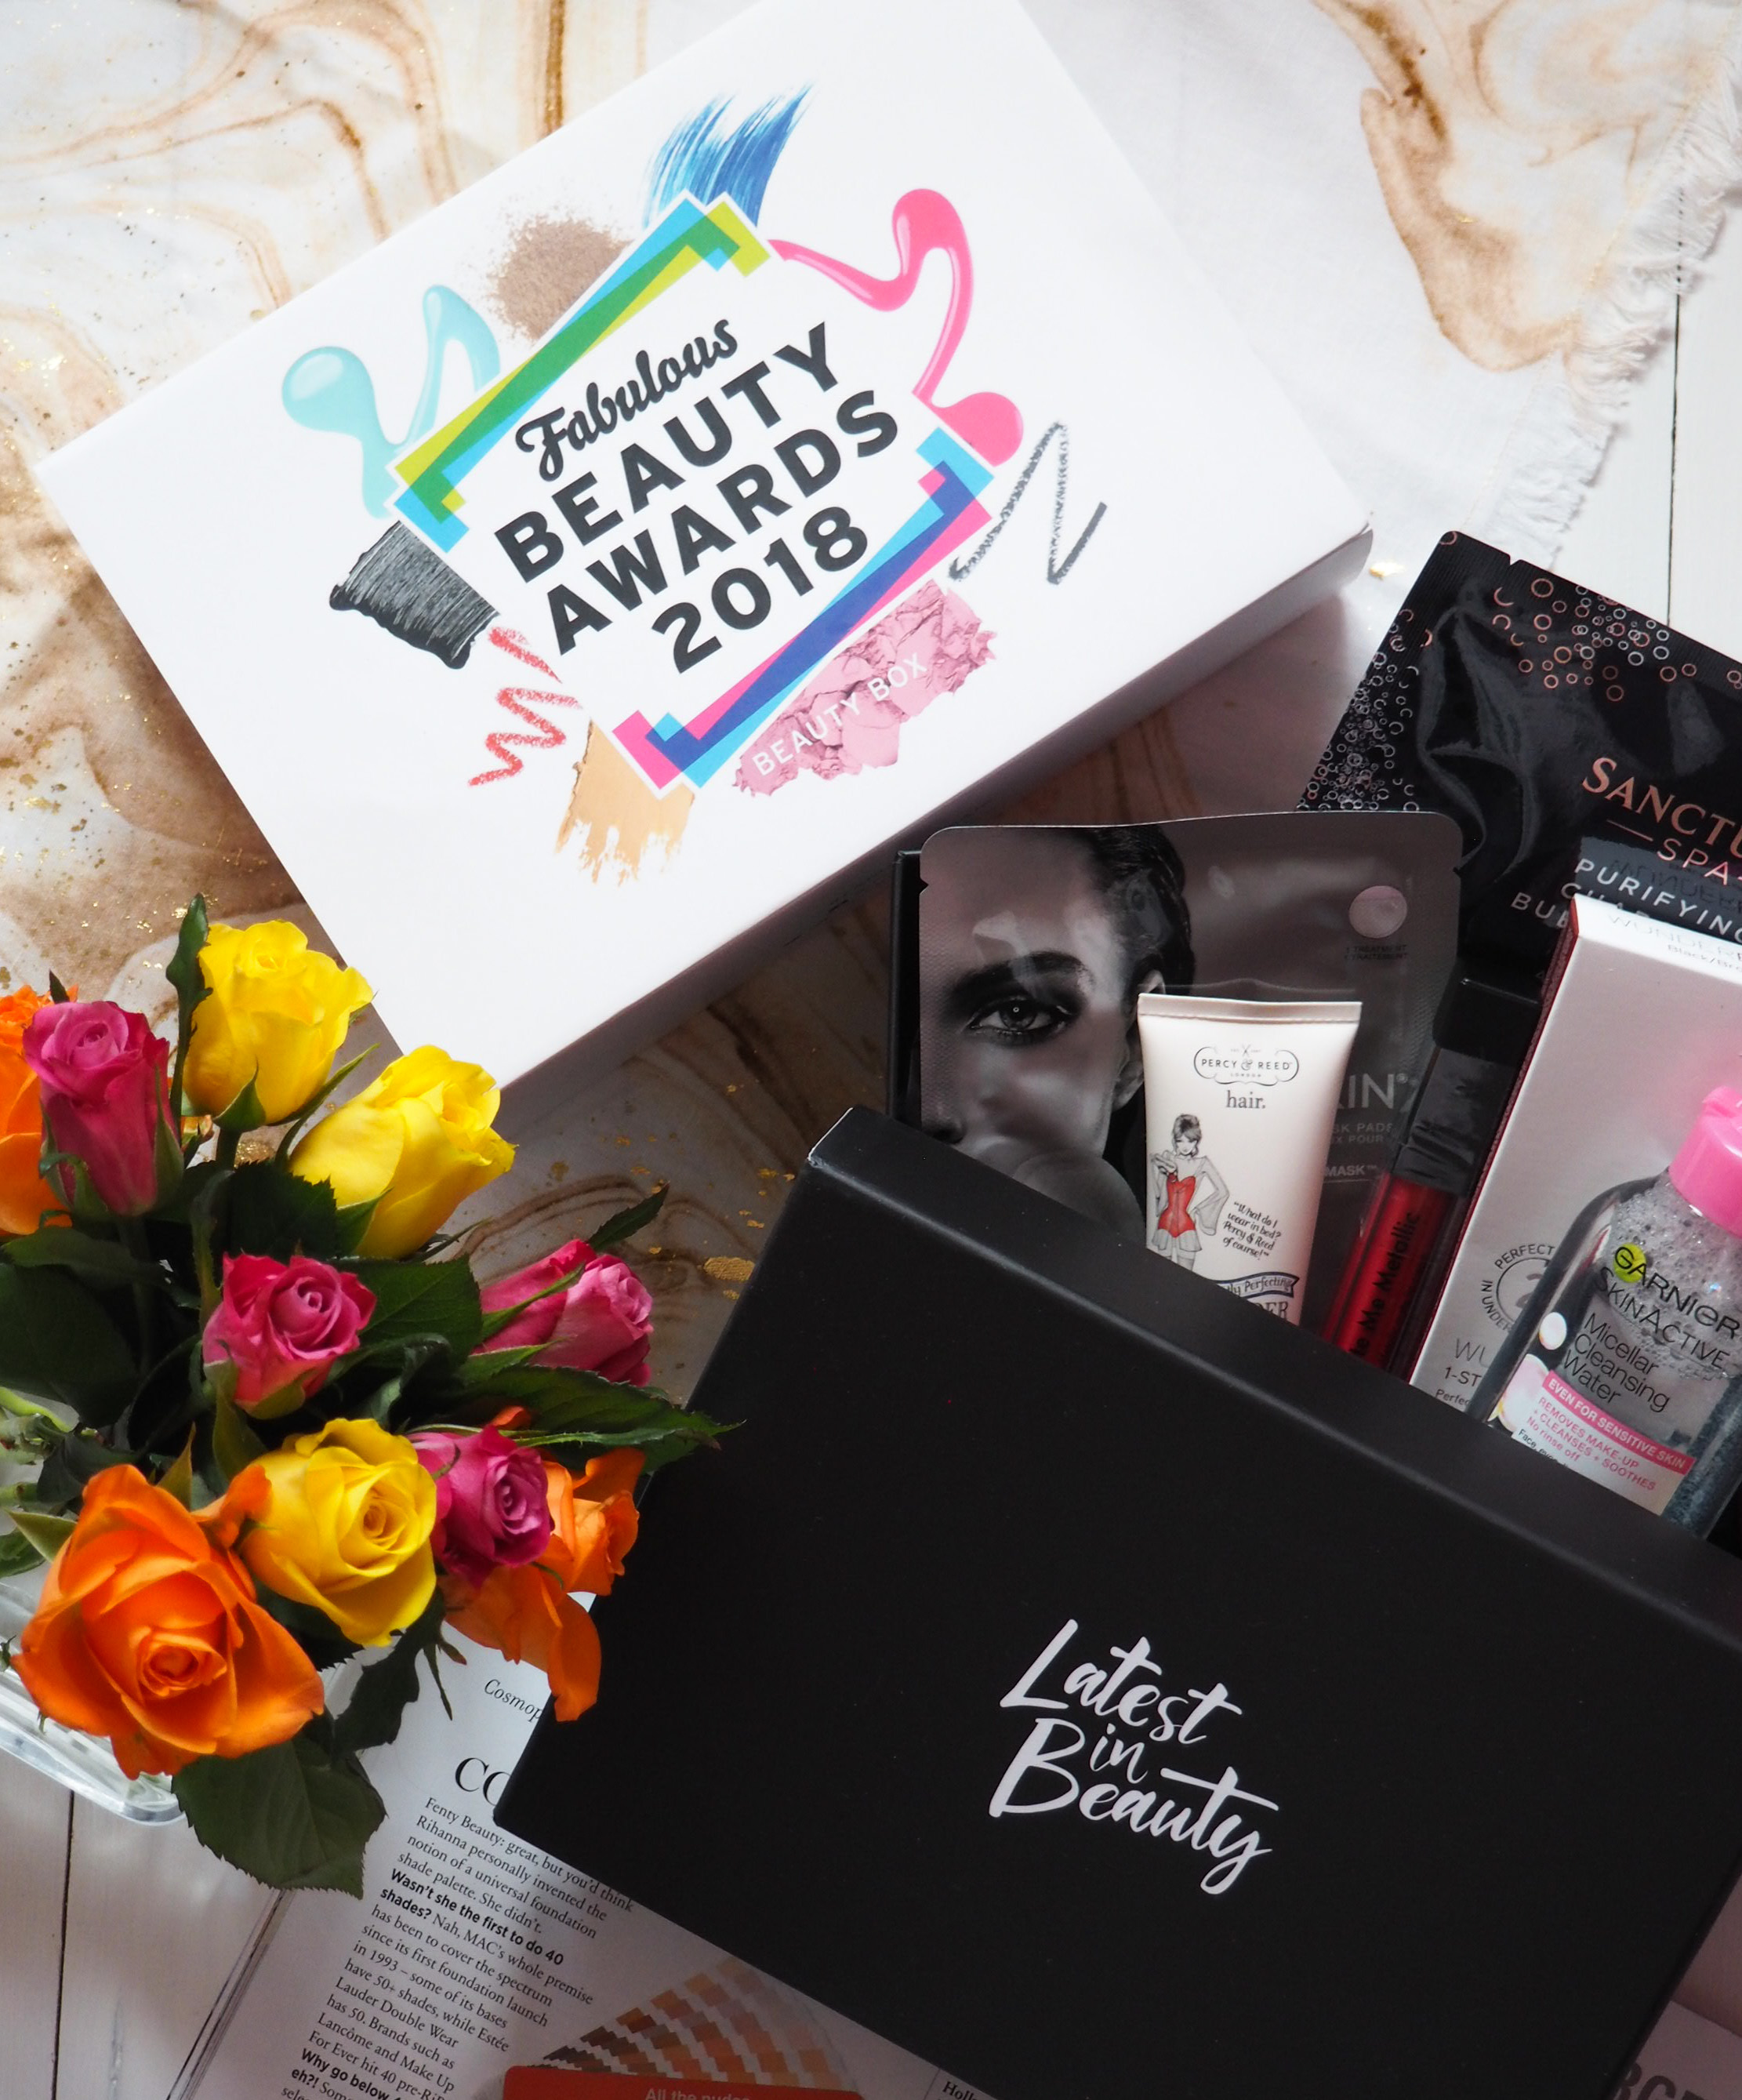 Fabulous Beauty Awards 2018 Beauty Box from Latest in Beauty 3.jpg